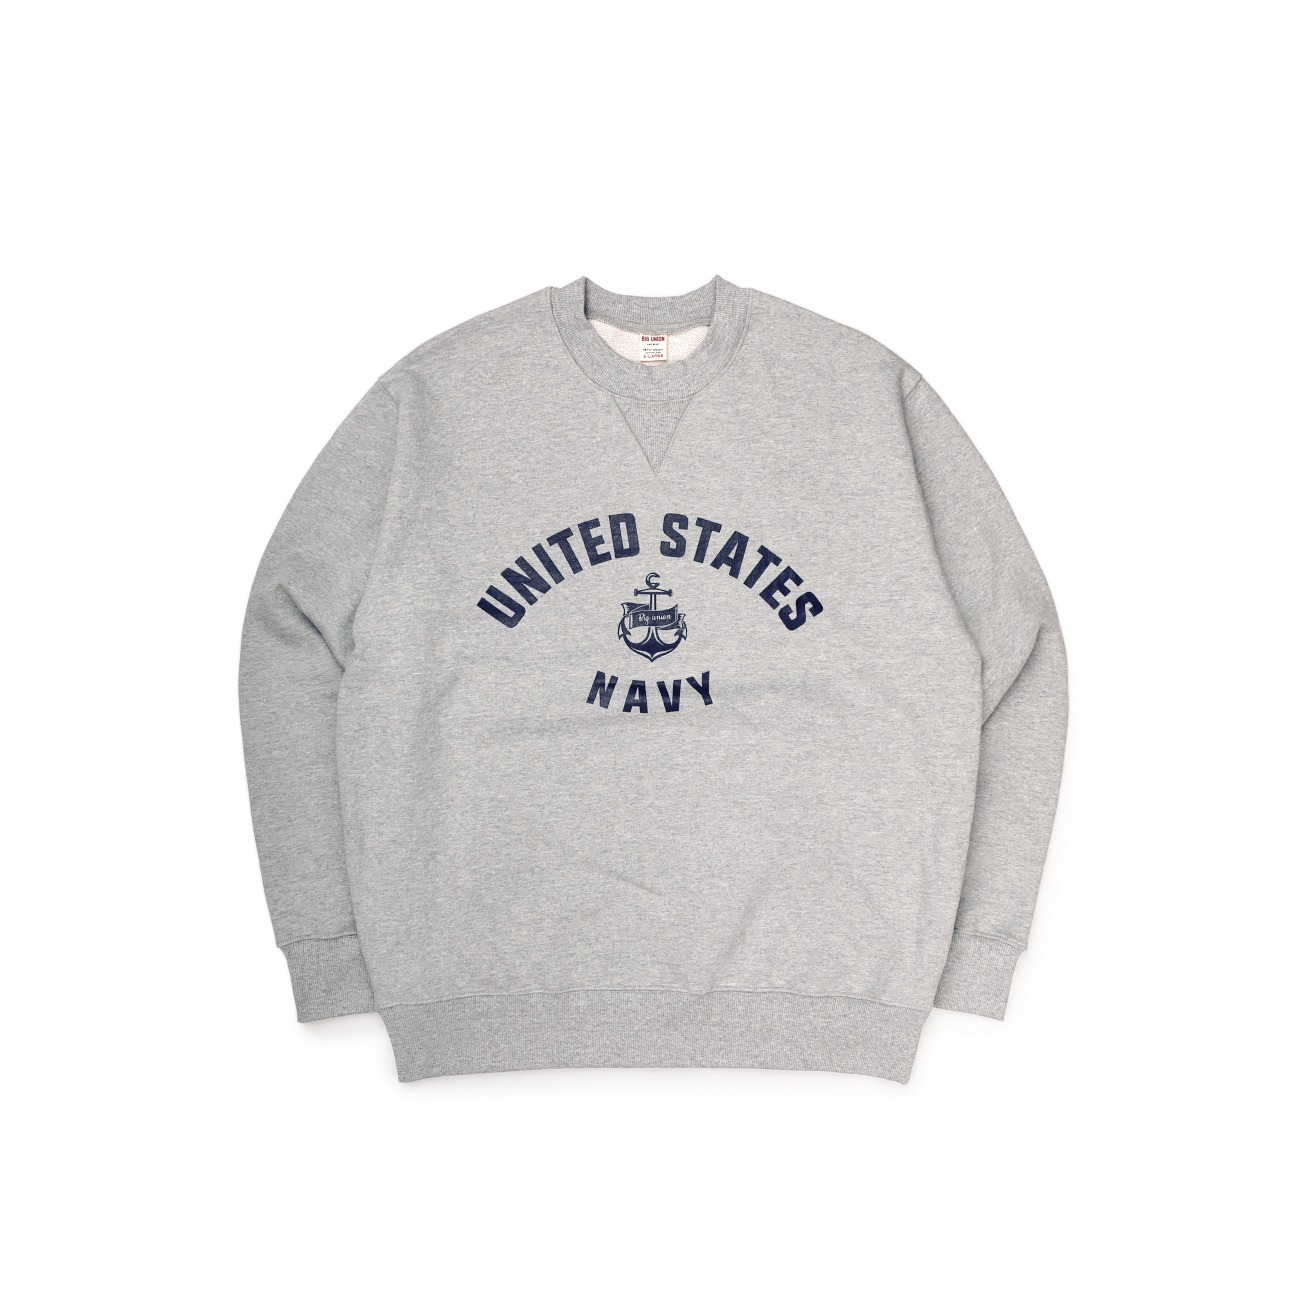 89 United States Navy Sweat Crew